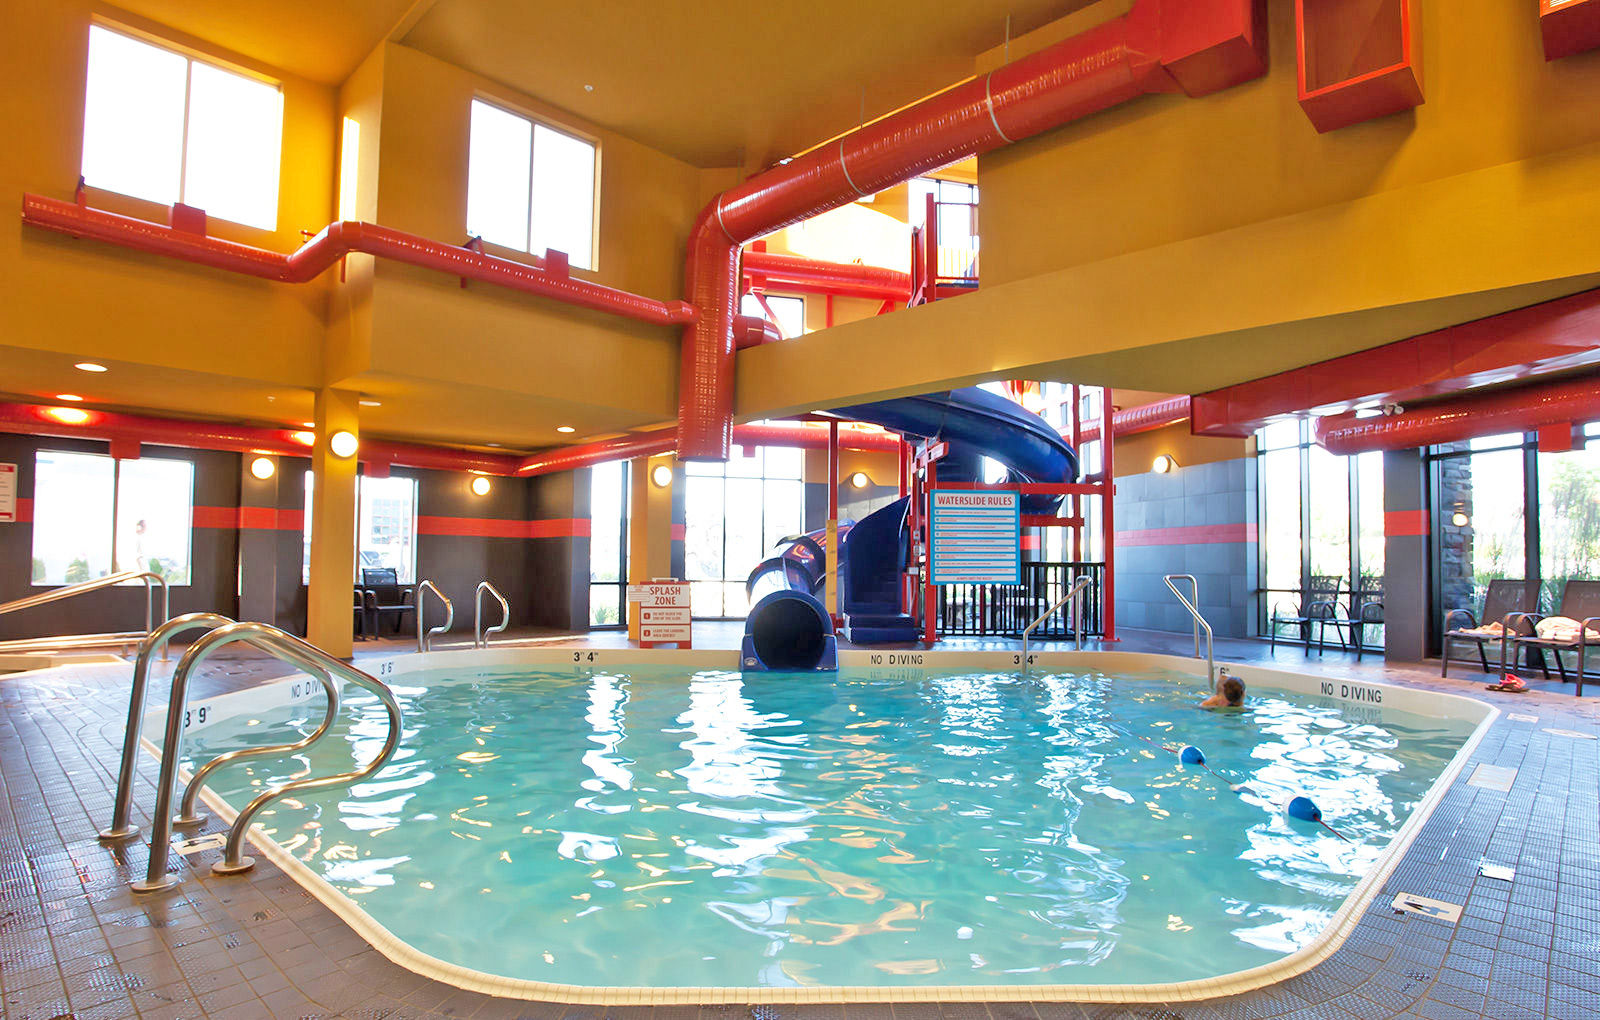 Jacuzzi Pool And Spa Kelowna How To Keep The Young Ones Entertained Comfort Suites